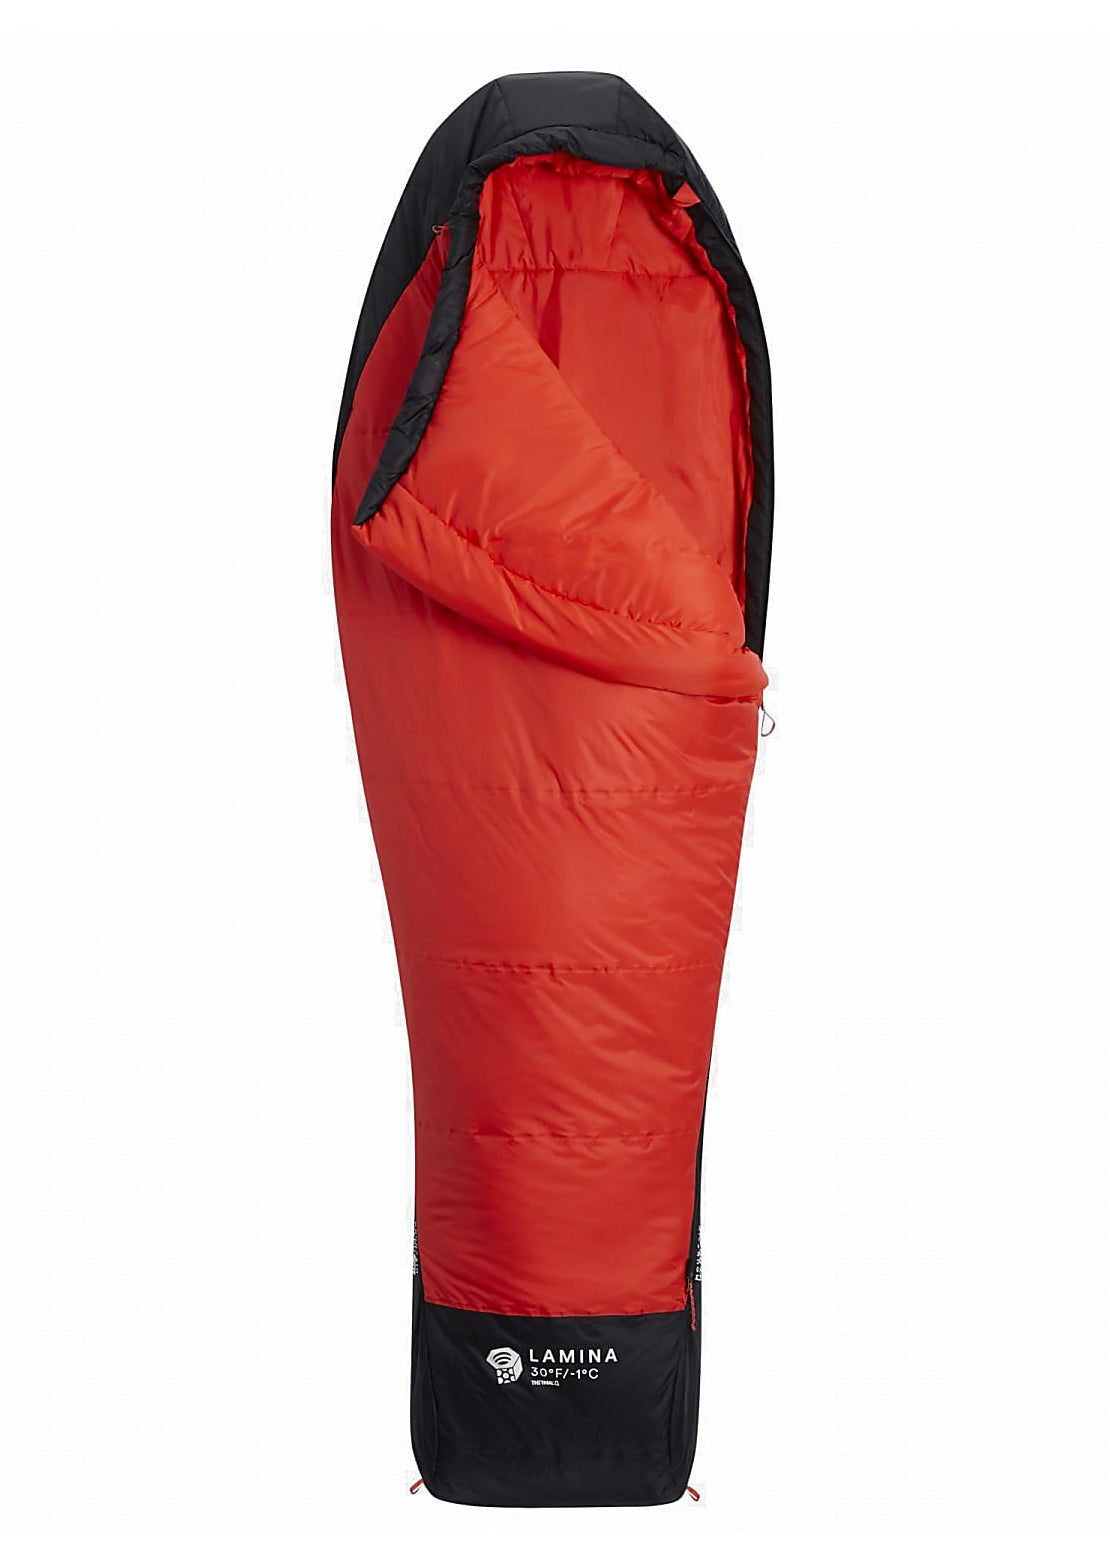 Mountain Hardwear Women's Lamina 30F/-1C Long Sleeping Bag Poppy Red